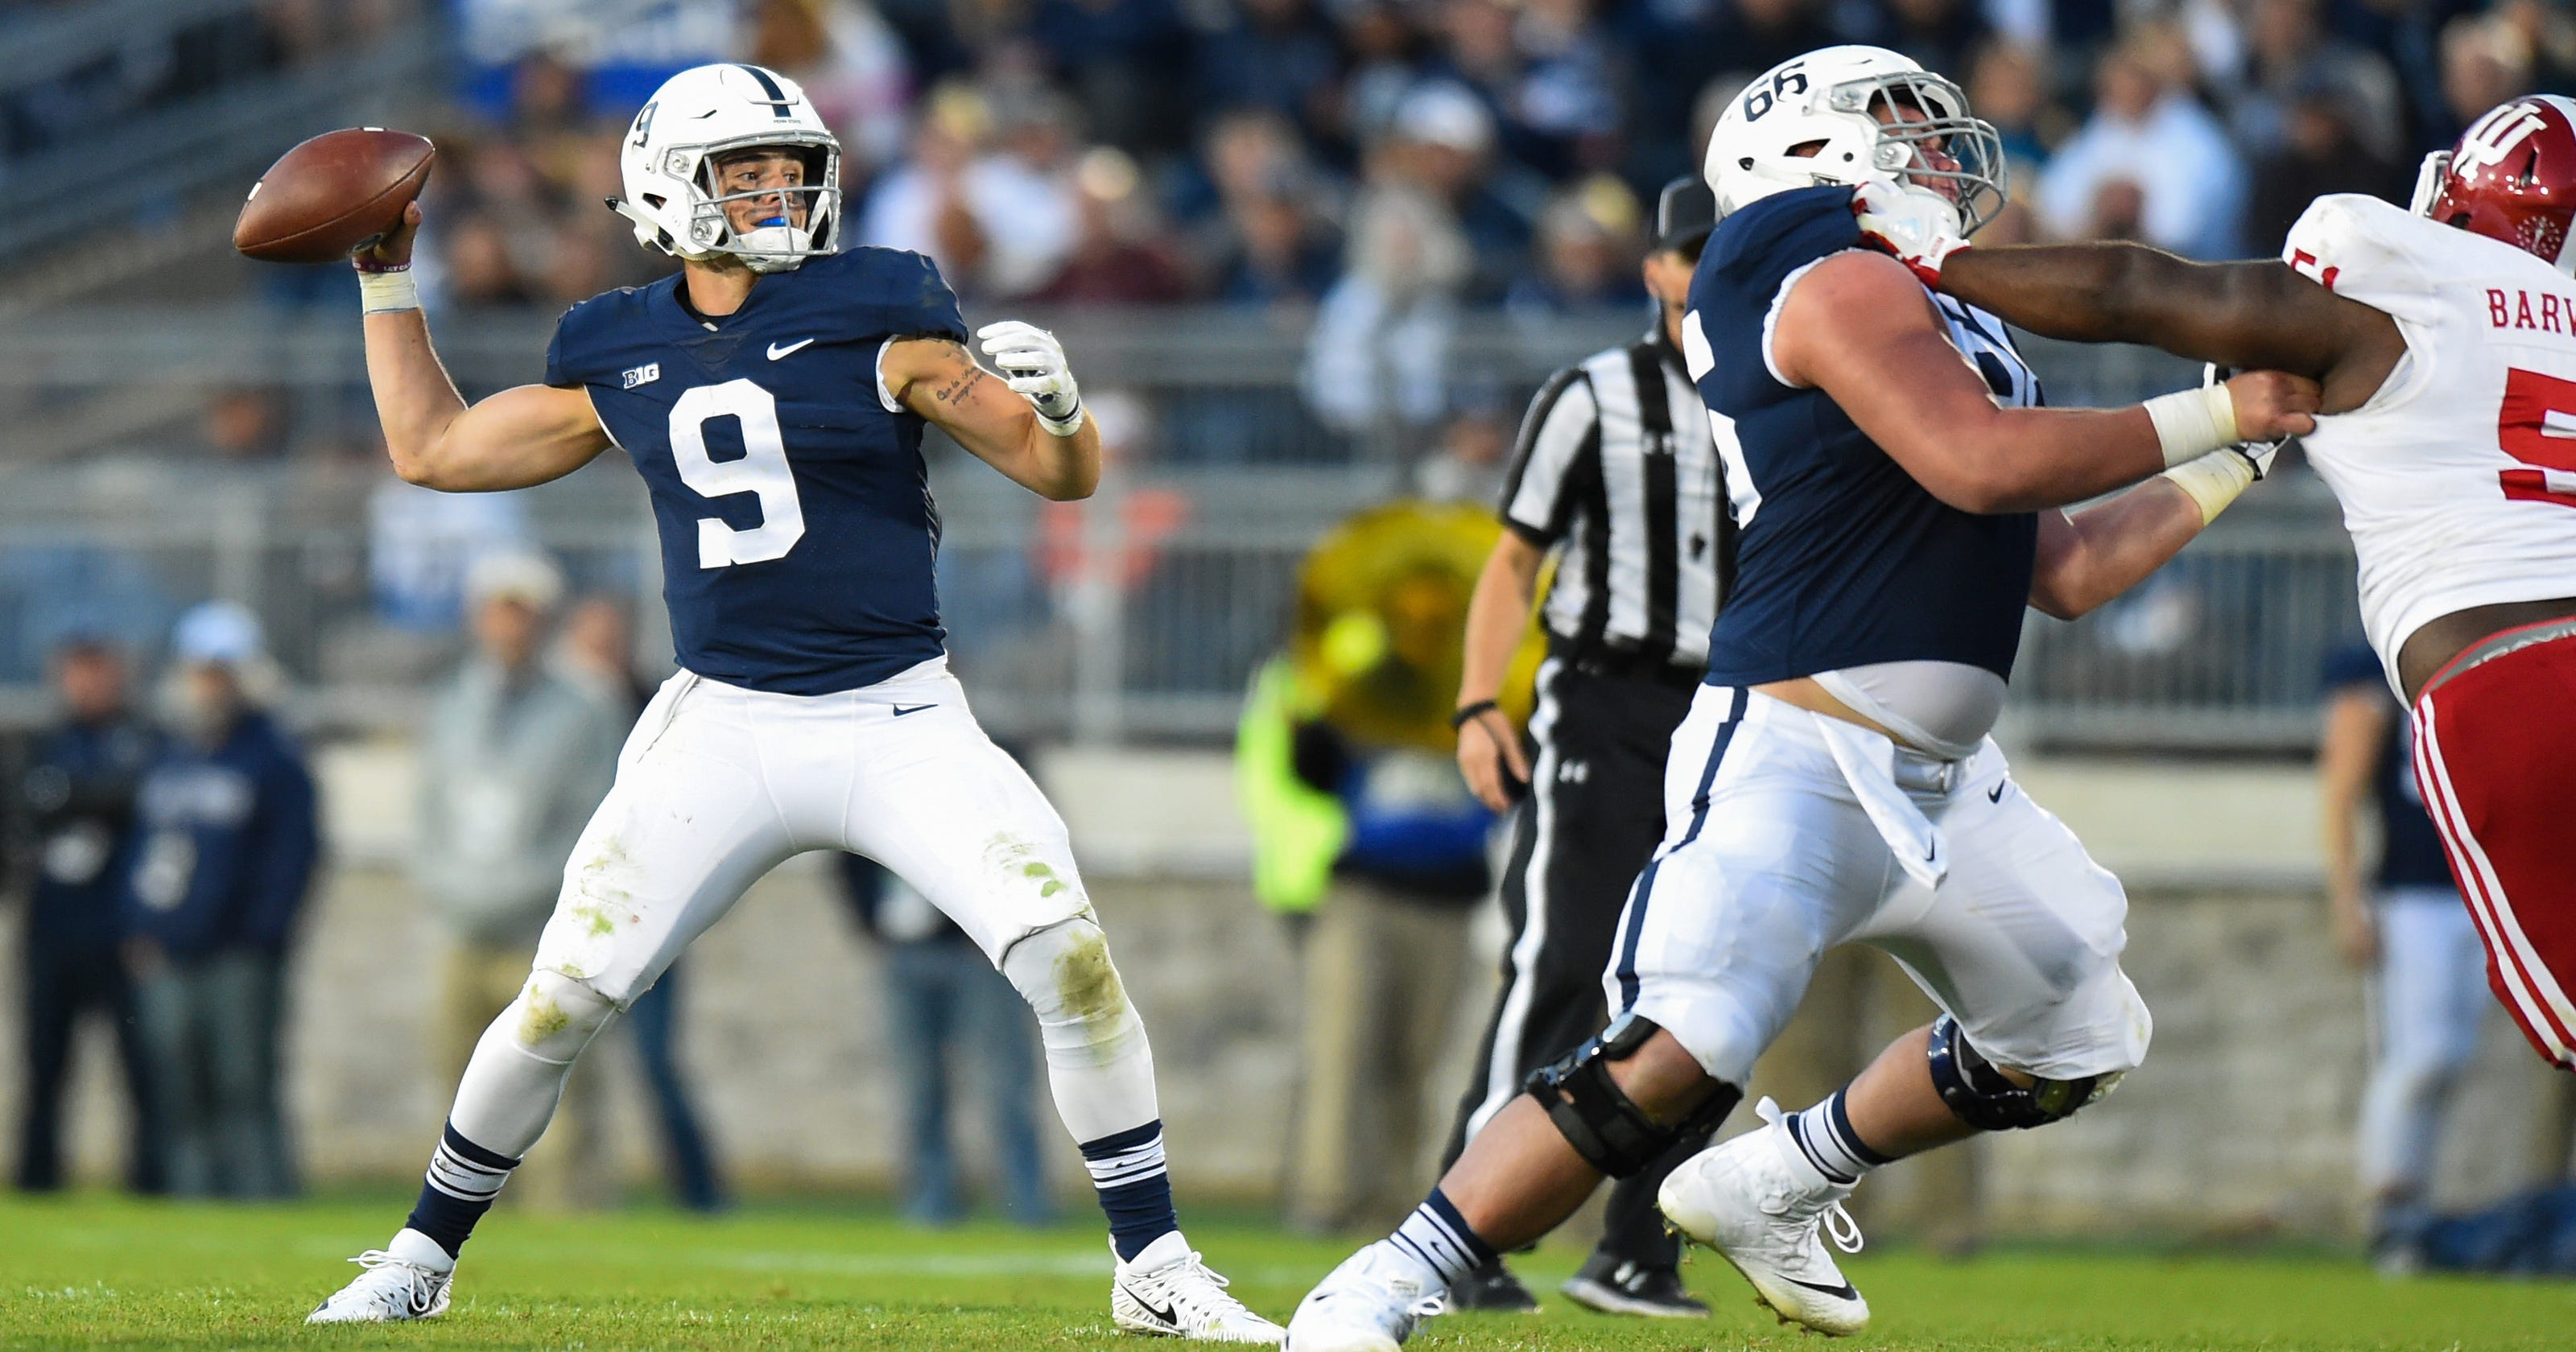 Saquon Barkley is the star in Penn State s offense a7b5a5f07